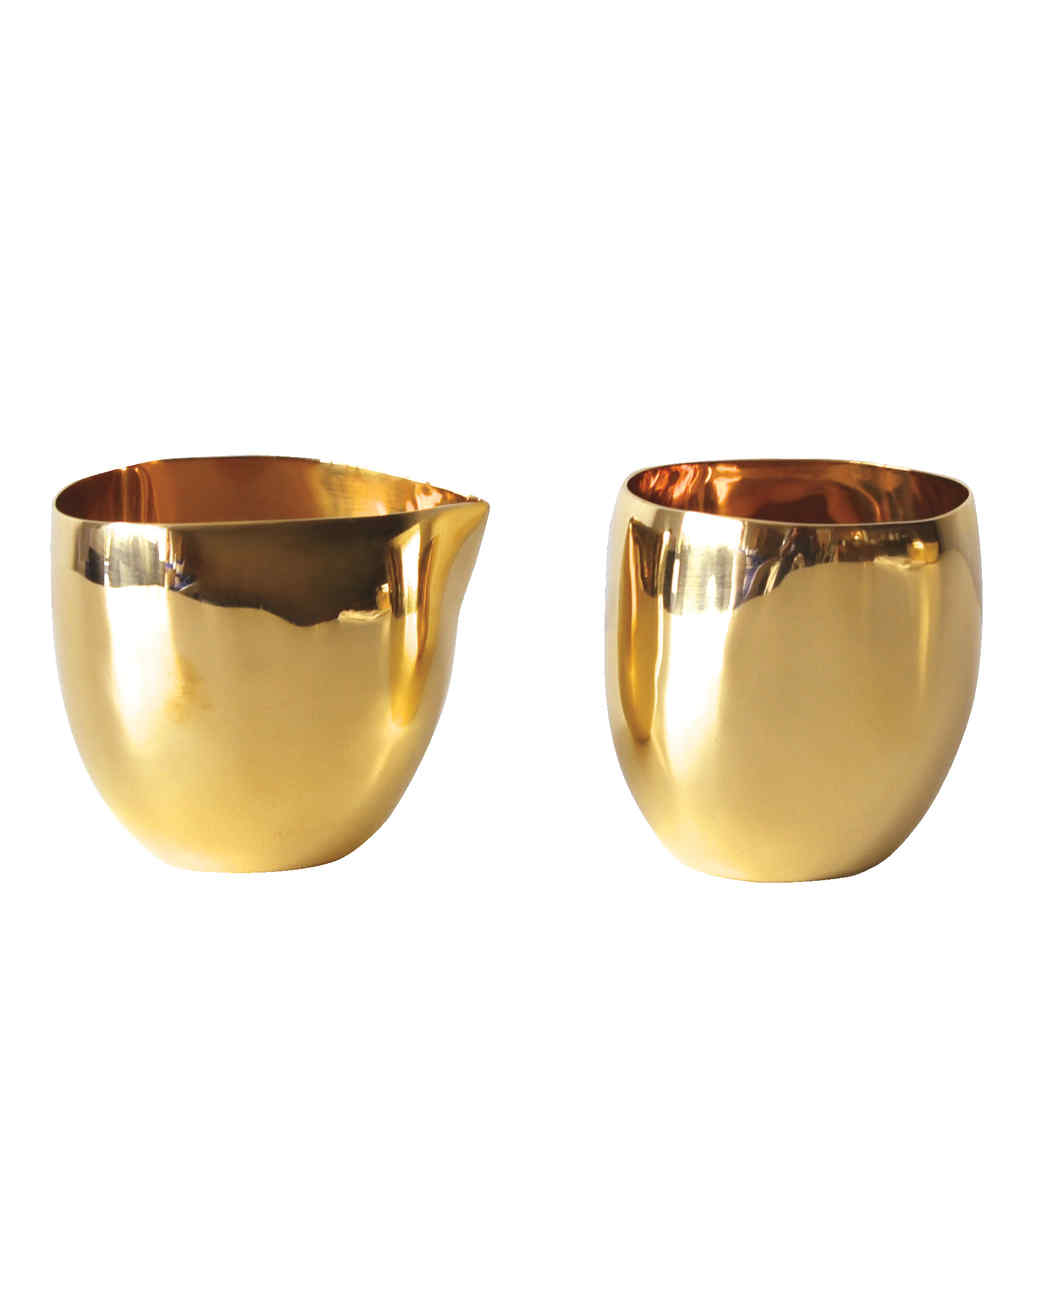 copper-bowls-dsc-0759-s112527.jpg